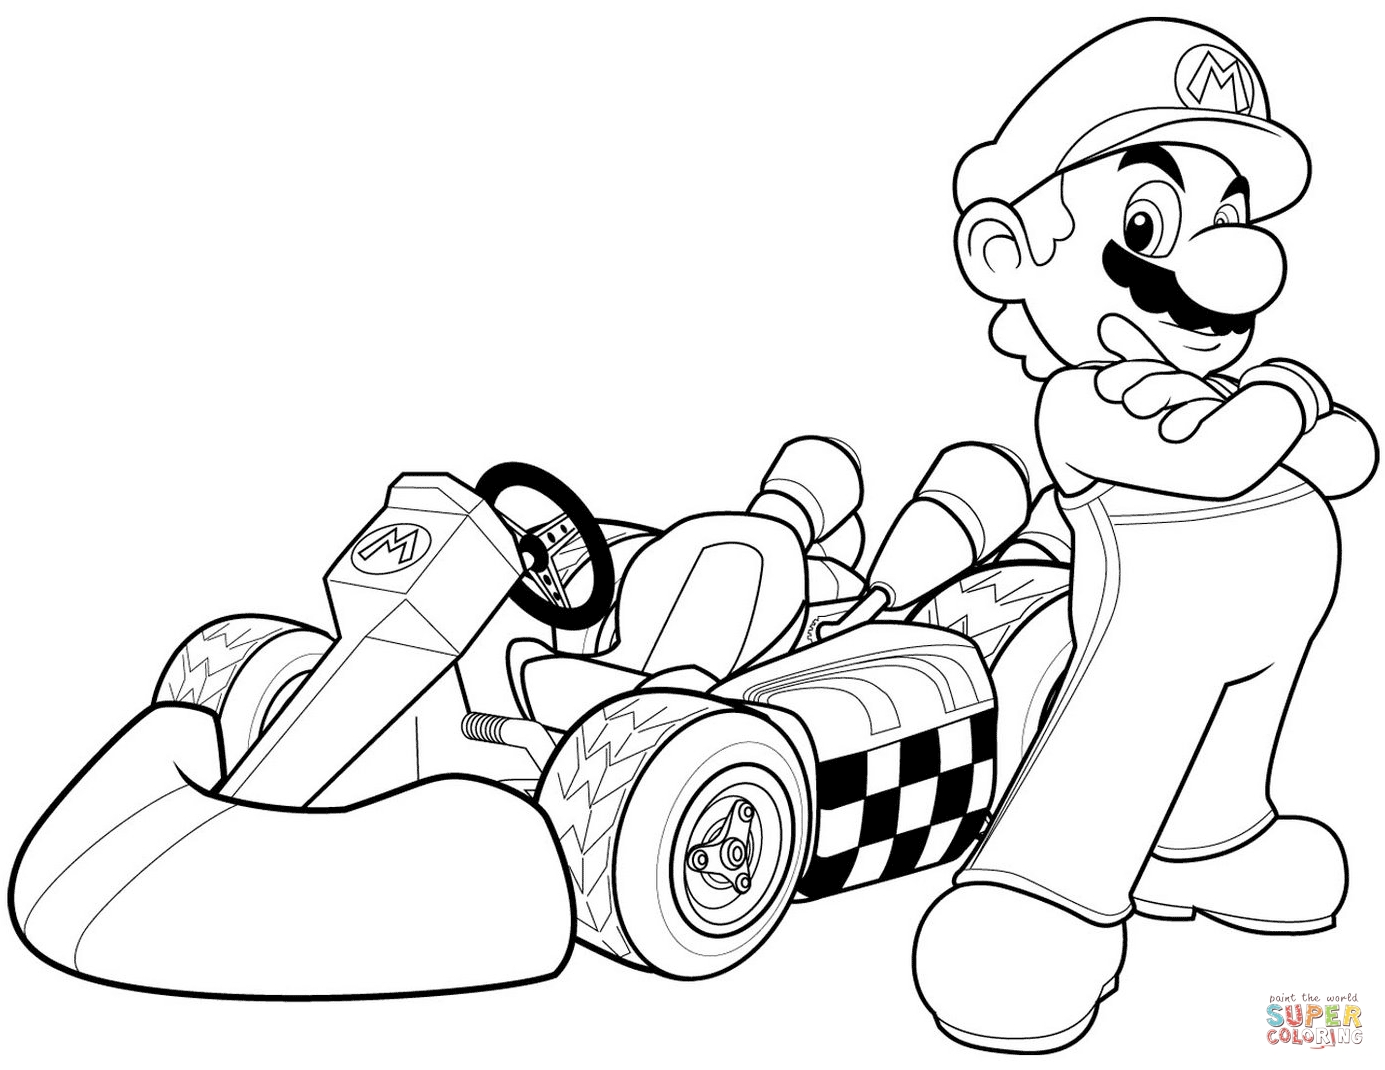 1385x1070 Super Mario Odyssey Coloring Pages Download Free Coloring Pages